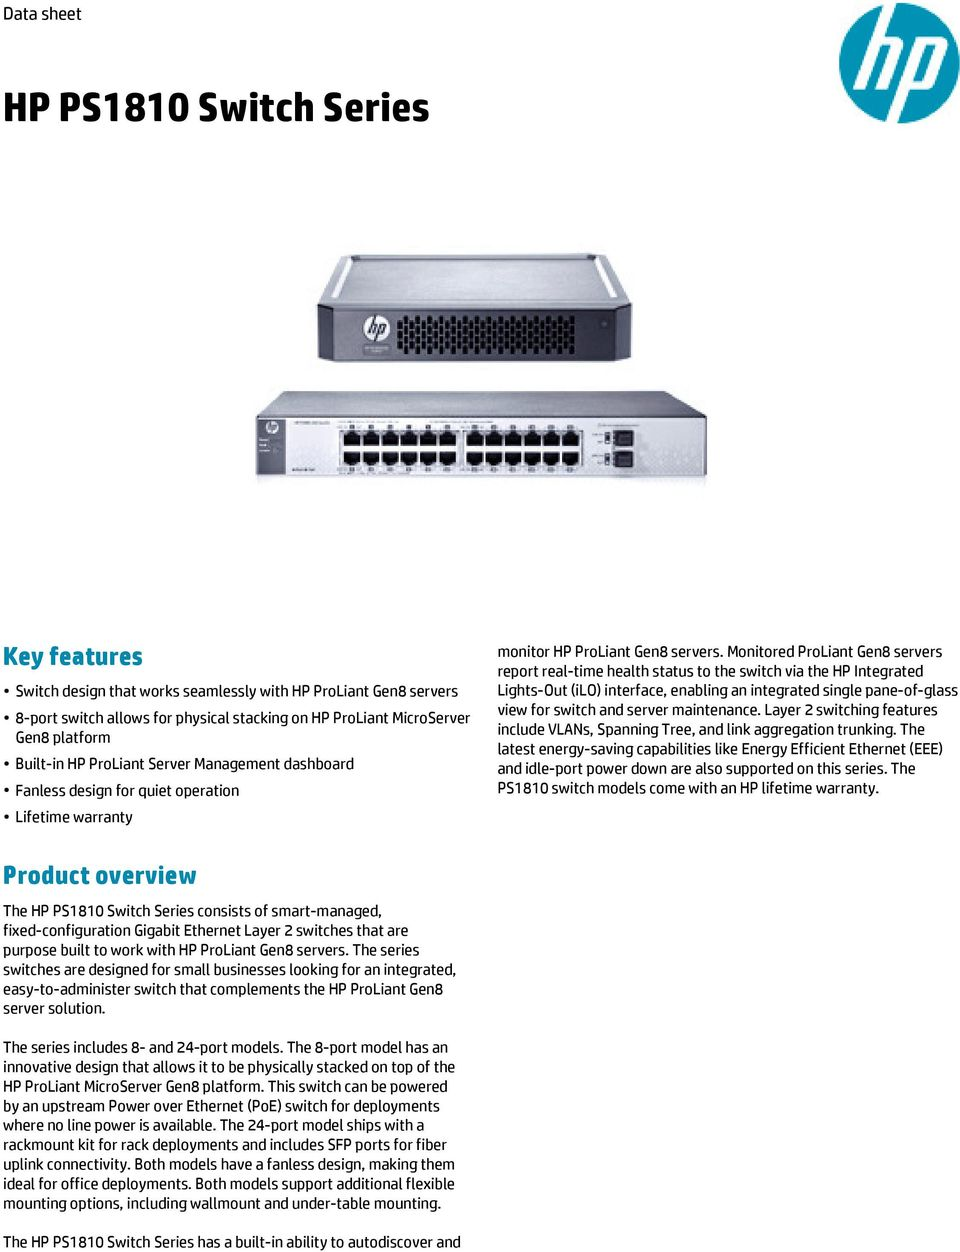 Monitored ProLiant Gen8 servers report real-time health status to the switch via the HP Integrated Lights-Out (ilo) interface, enabling an integrated single pane-of-glass view for switch and server